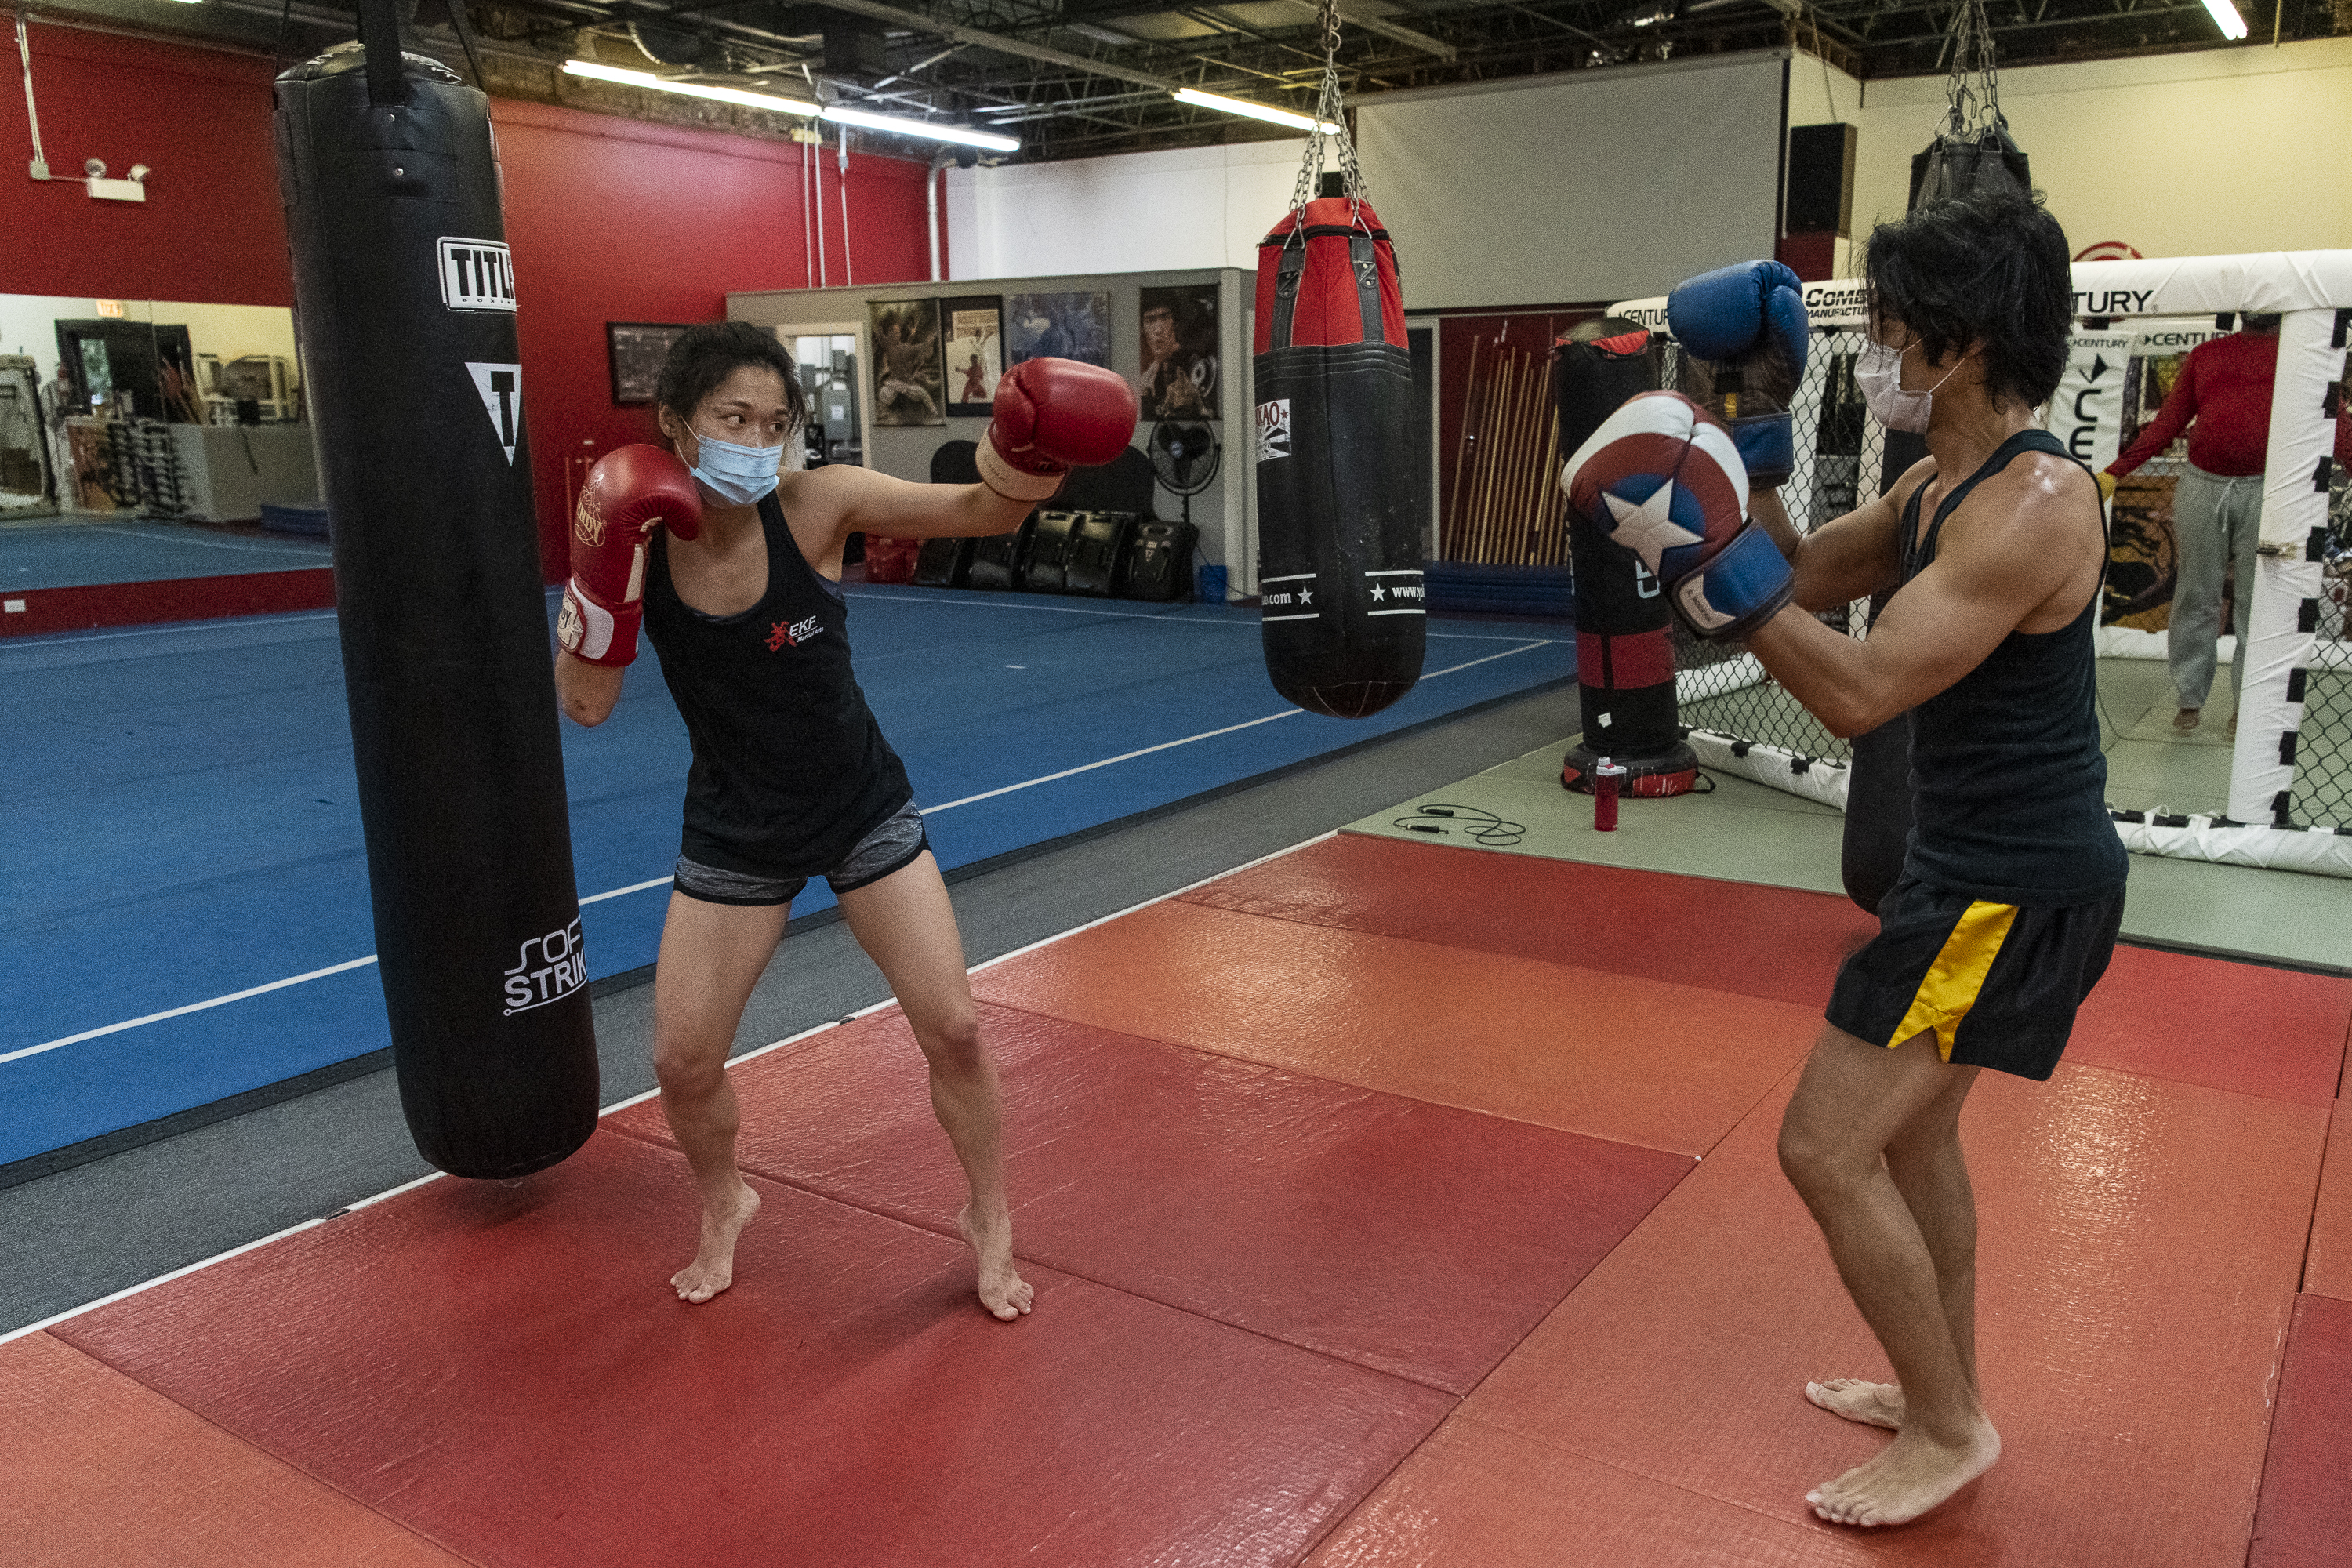 Jun Phan (left), a student at EKF Martial Arts spars with owner and head coach Tony Marquez during a boxing class in June. While group classes are no longer offered under new statewide restrictions, one-on-one classes are still allowed in gyms.